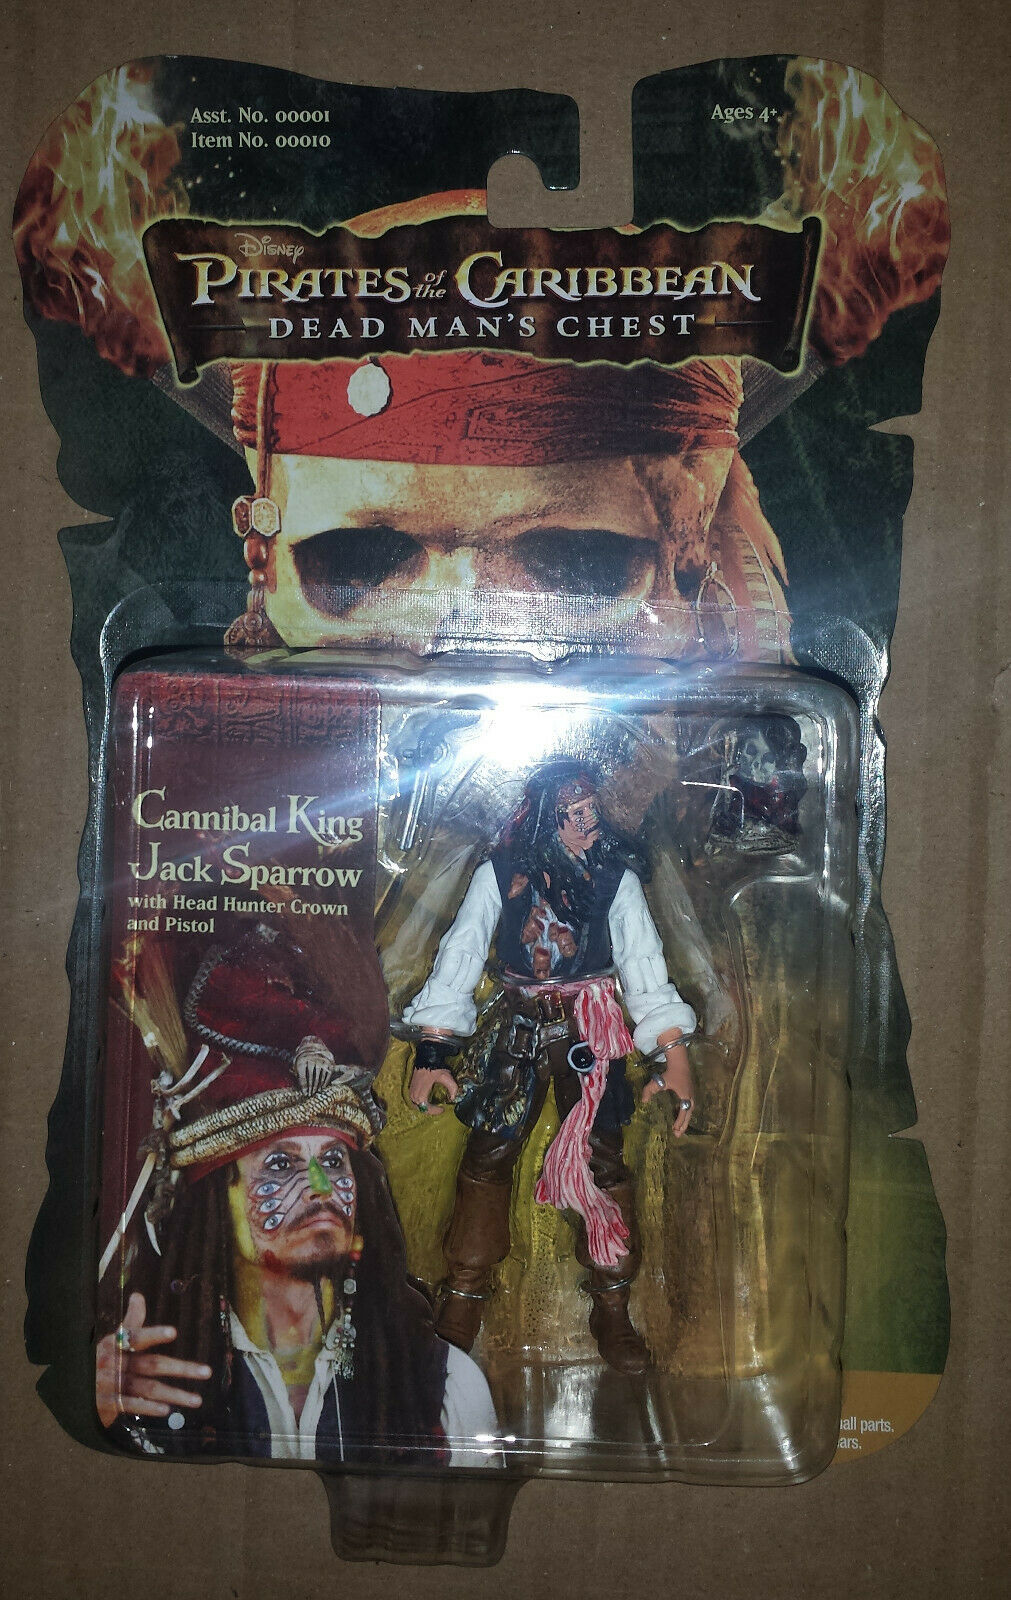 Sizzle Pirates of the bilibbean Figur Lot; Lot of 12 Annorful Figures, ny